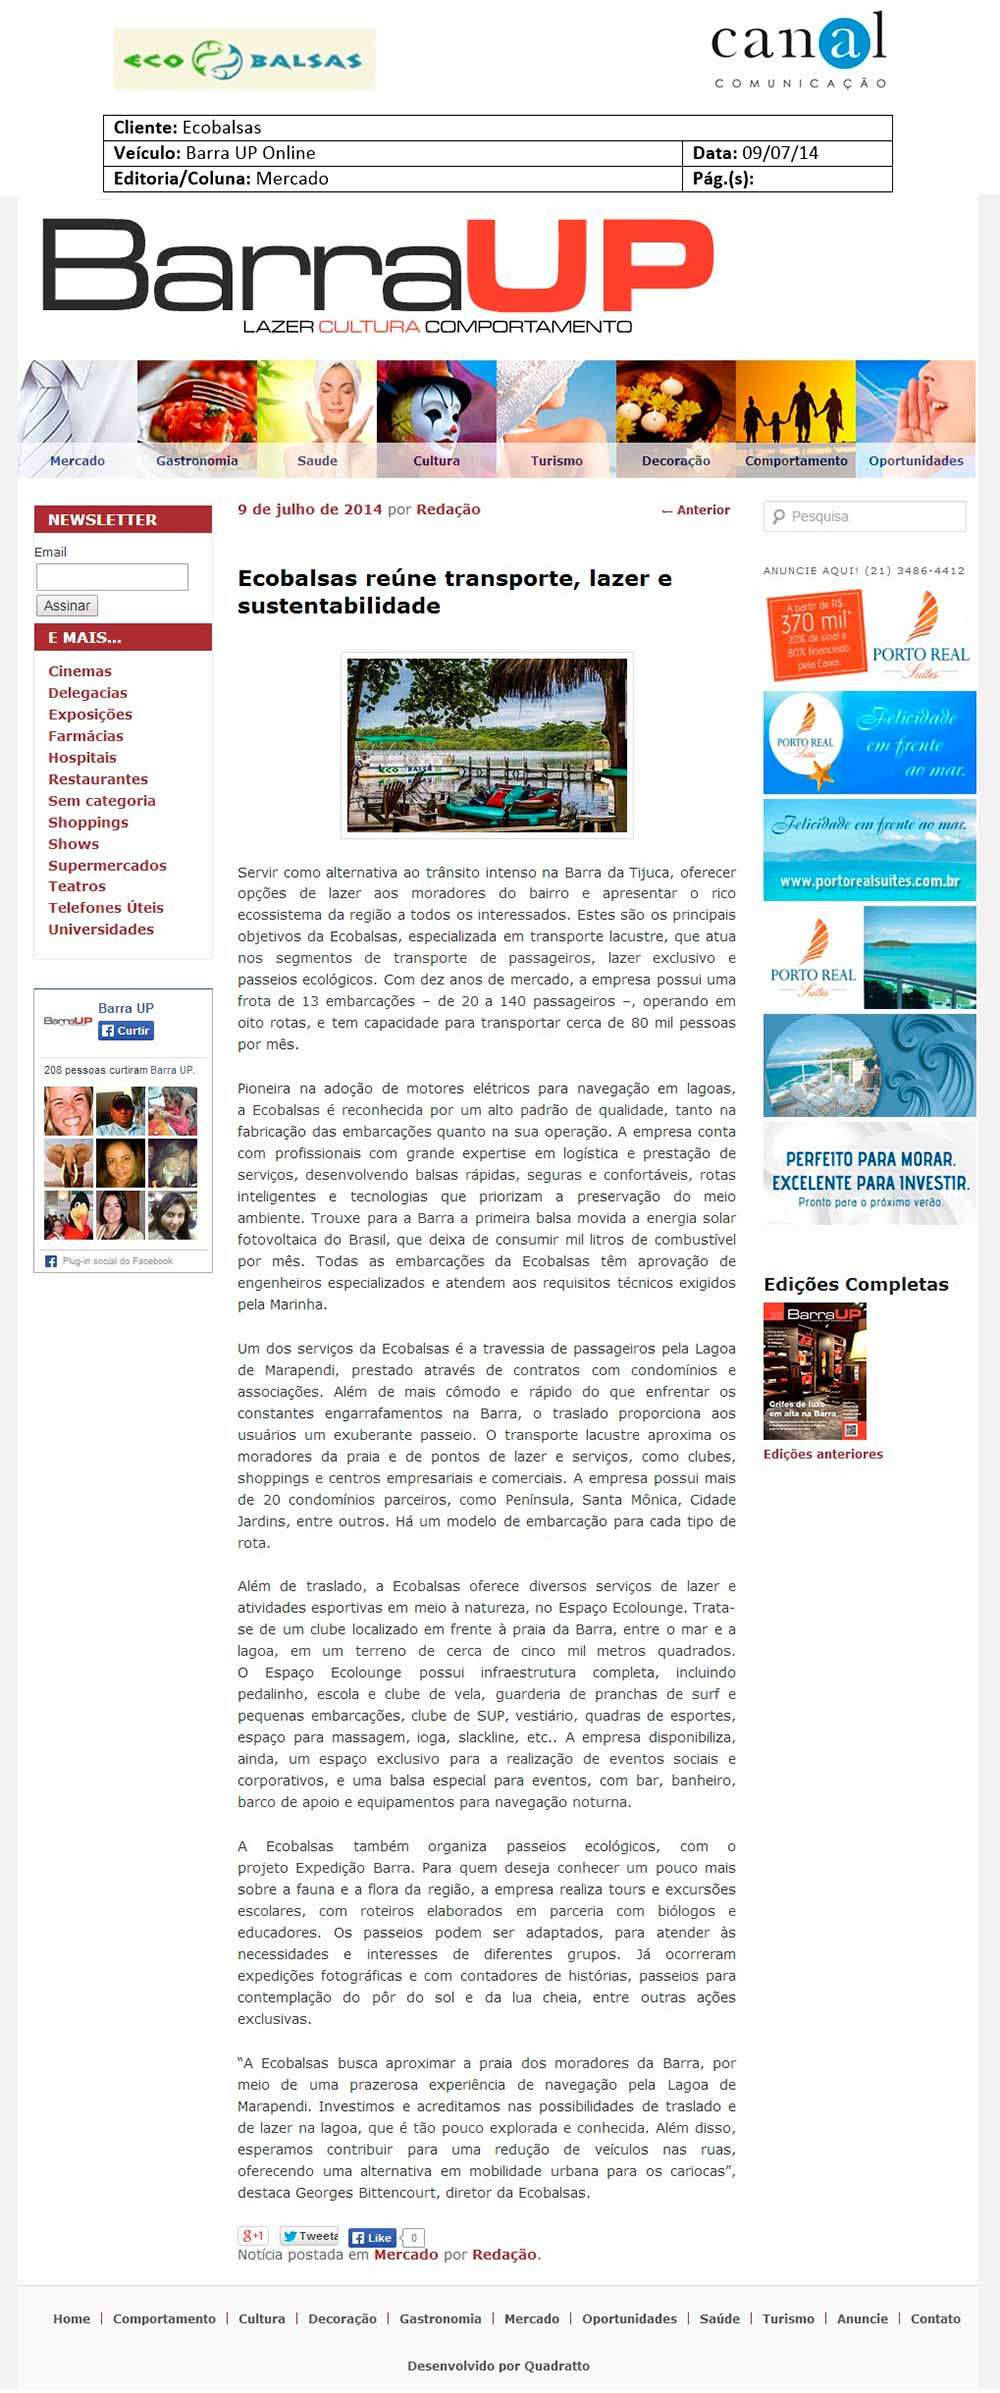 8-Ecobalsas_Barra-UP-Online-(Mercado)_09.07